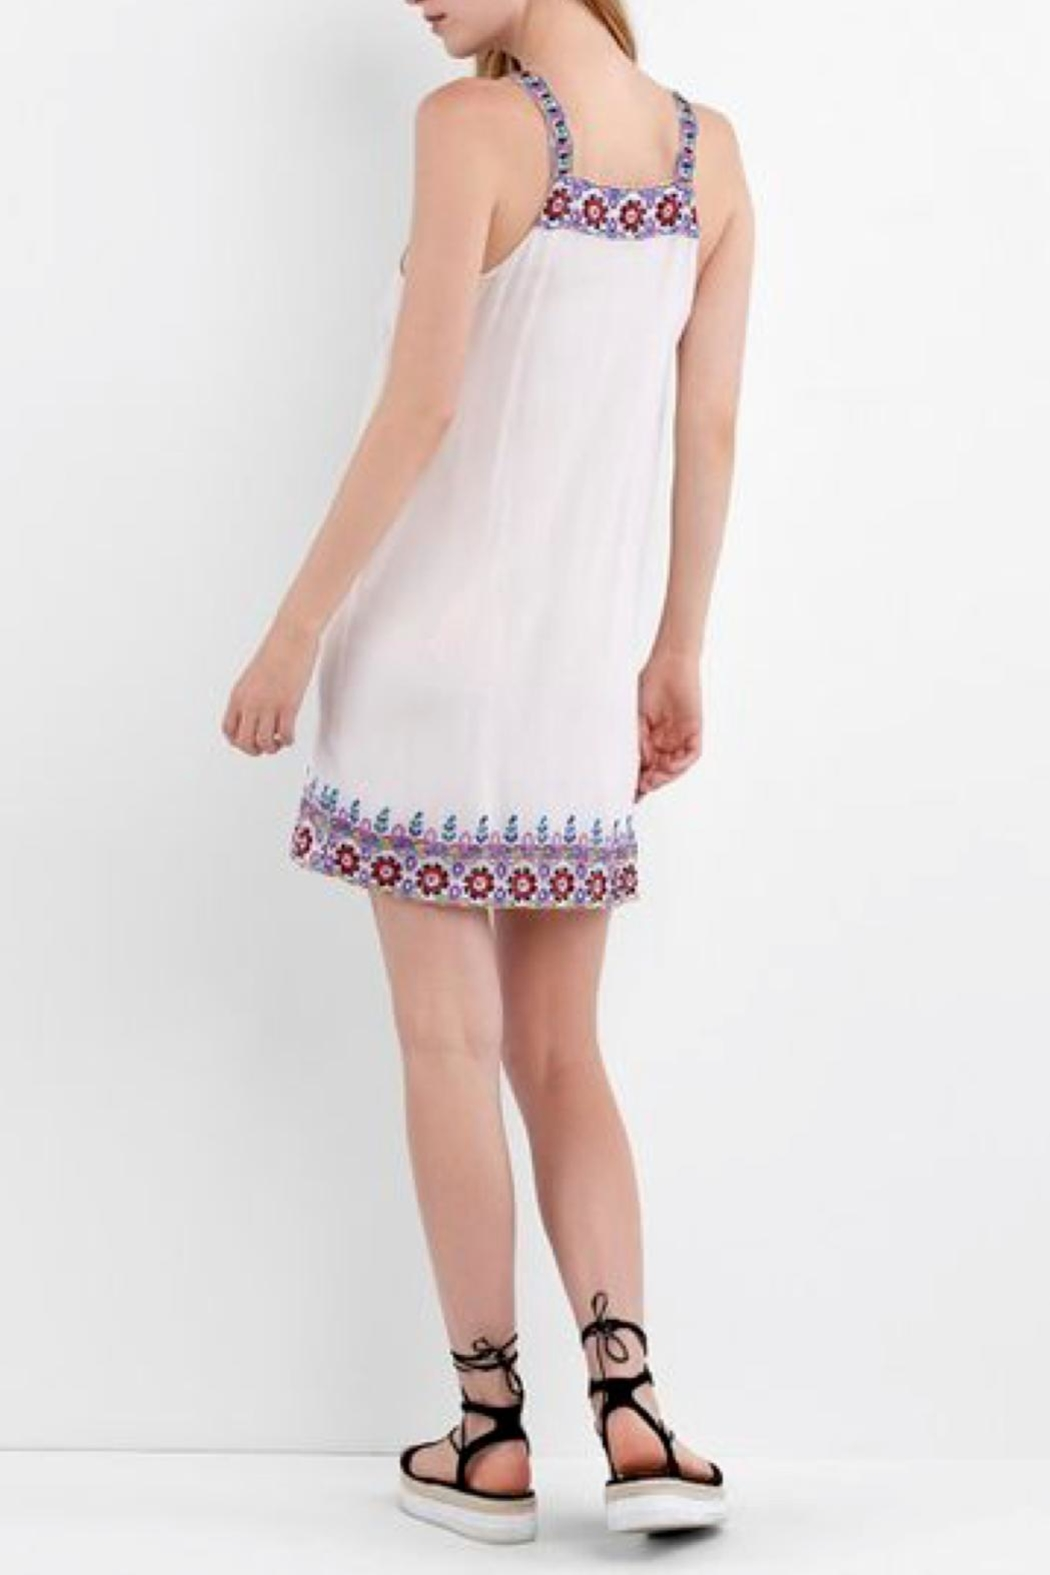 Nicole Miller Portofino Beaded Dress - Front Full Image